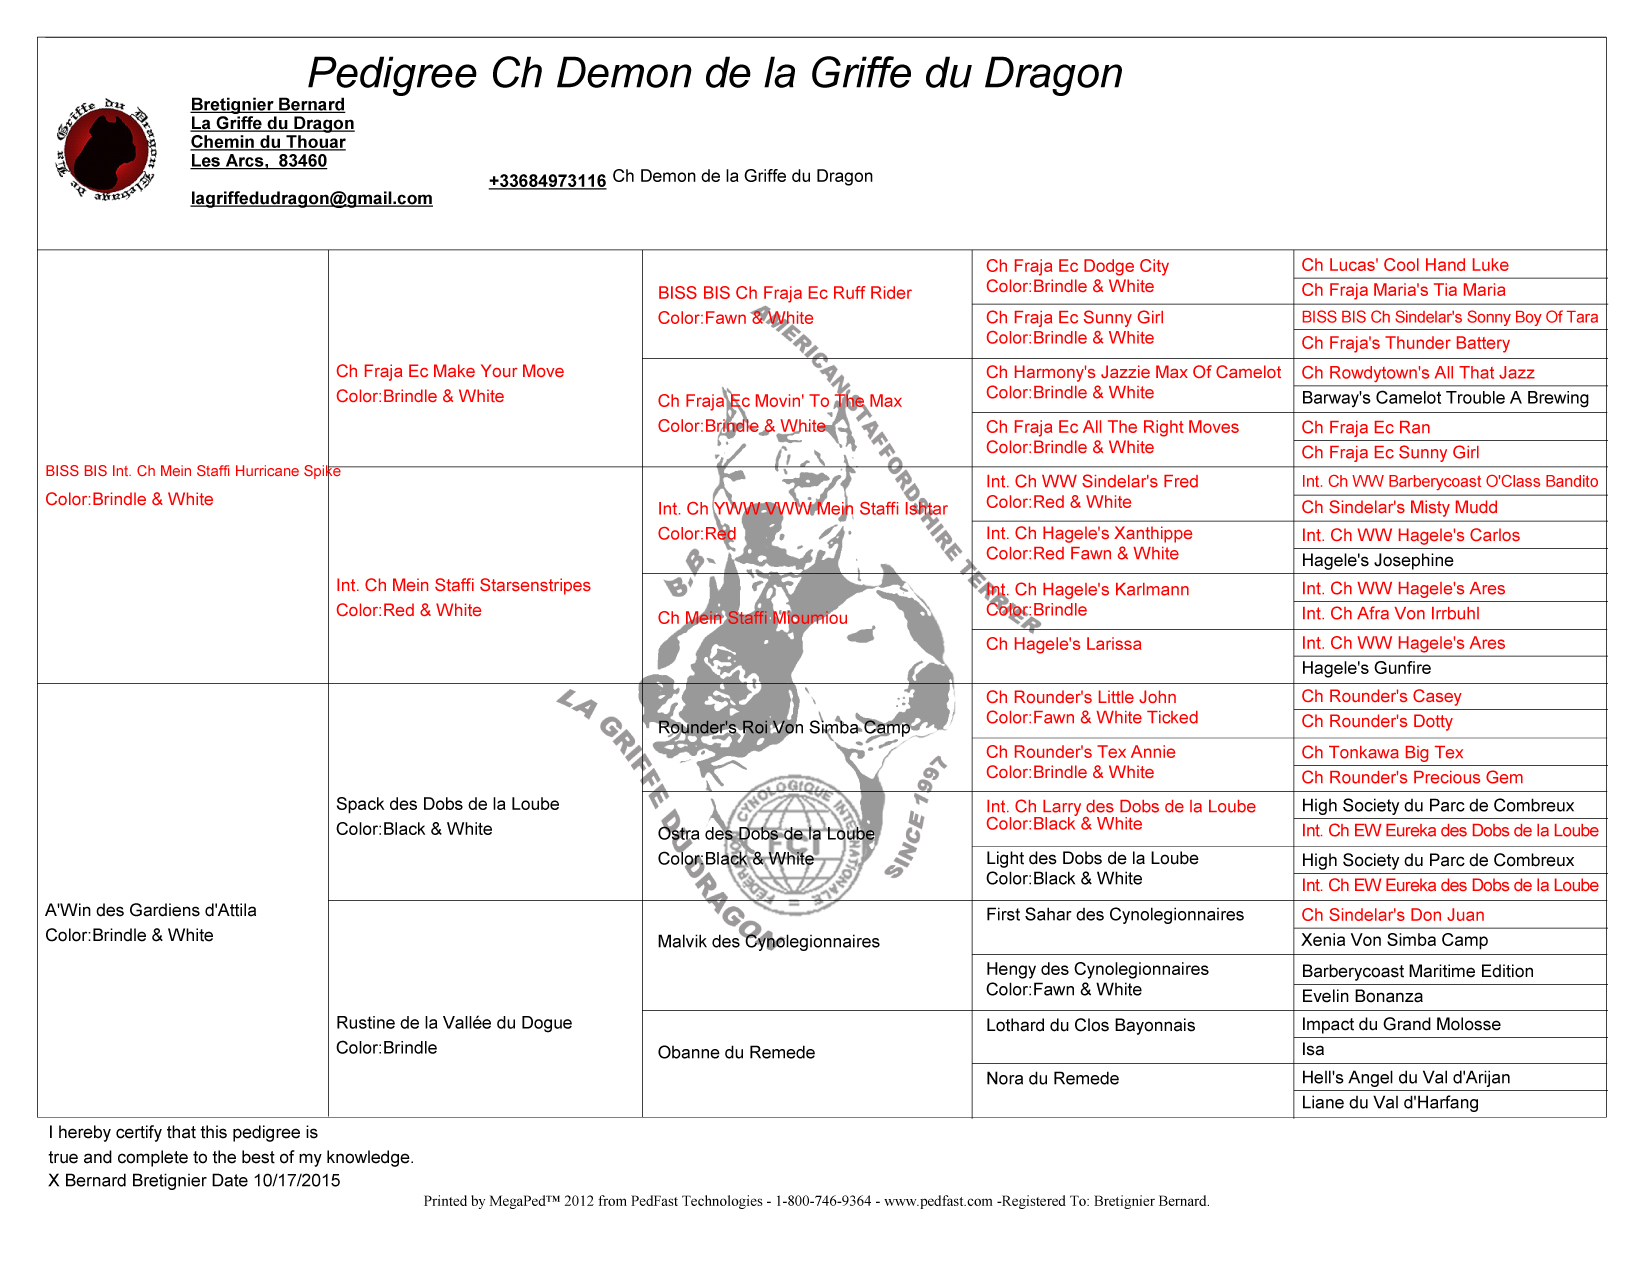 ELEVAGE DE LA GRIFFE DU DRAGON - AMERICAN STAFF - PED DEMON